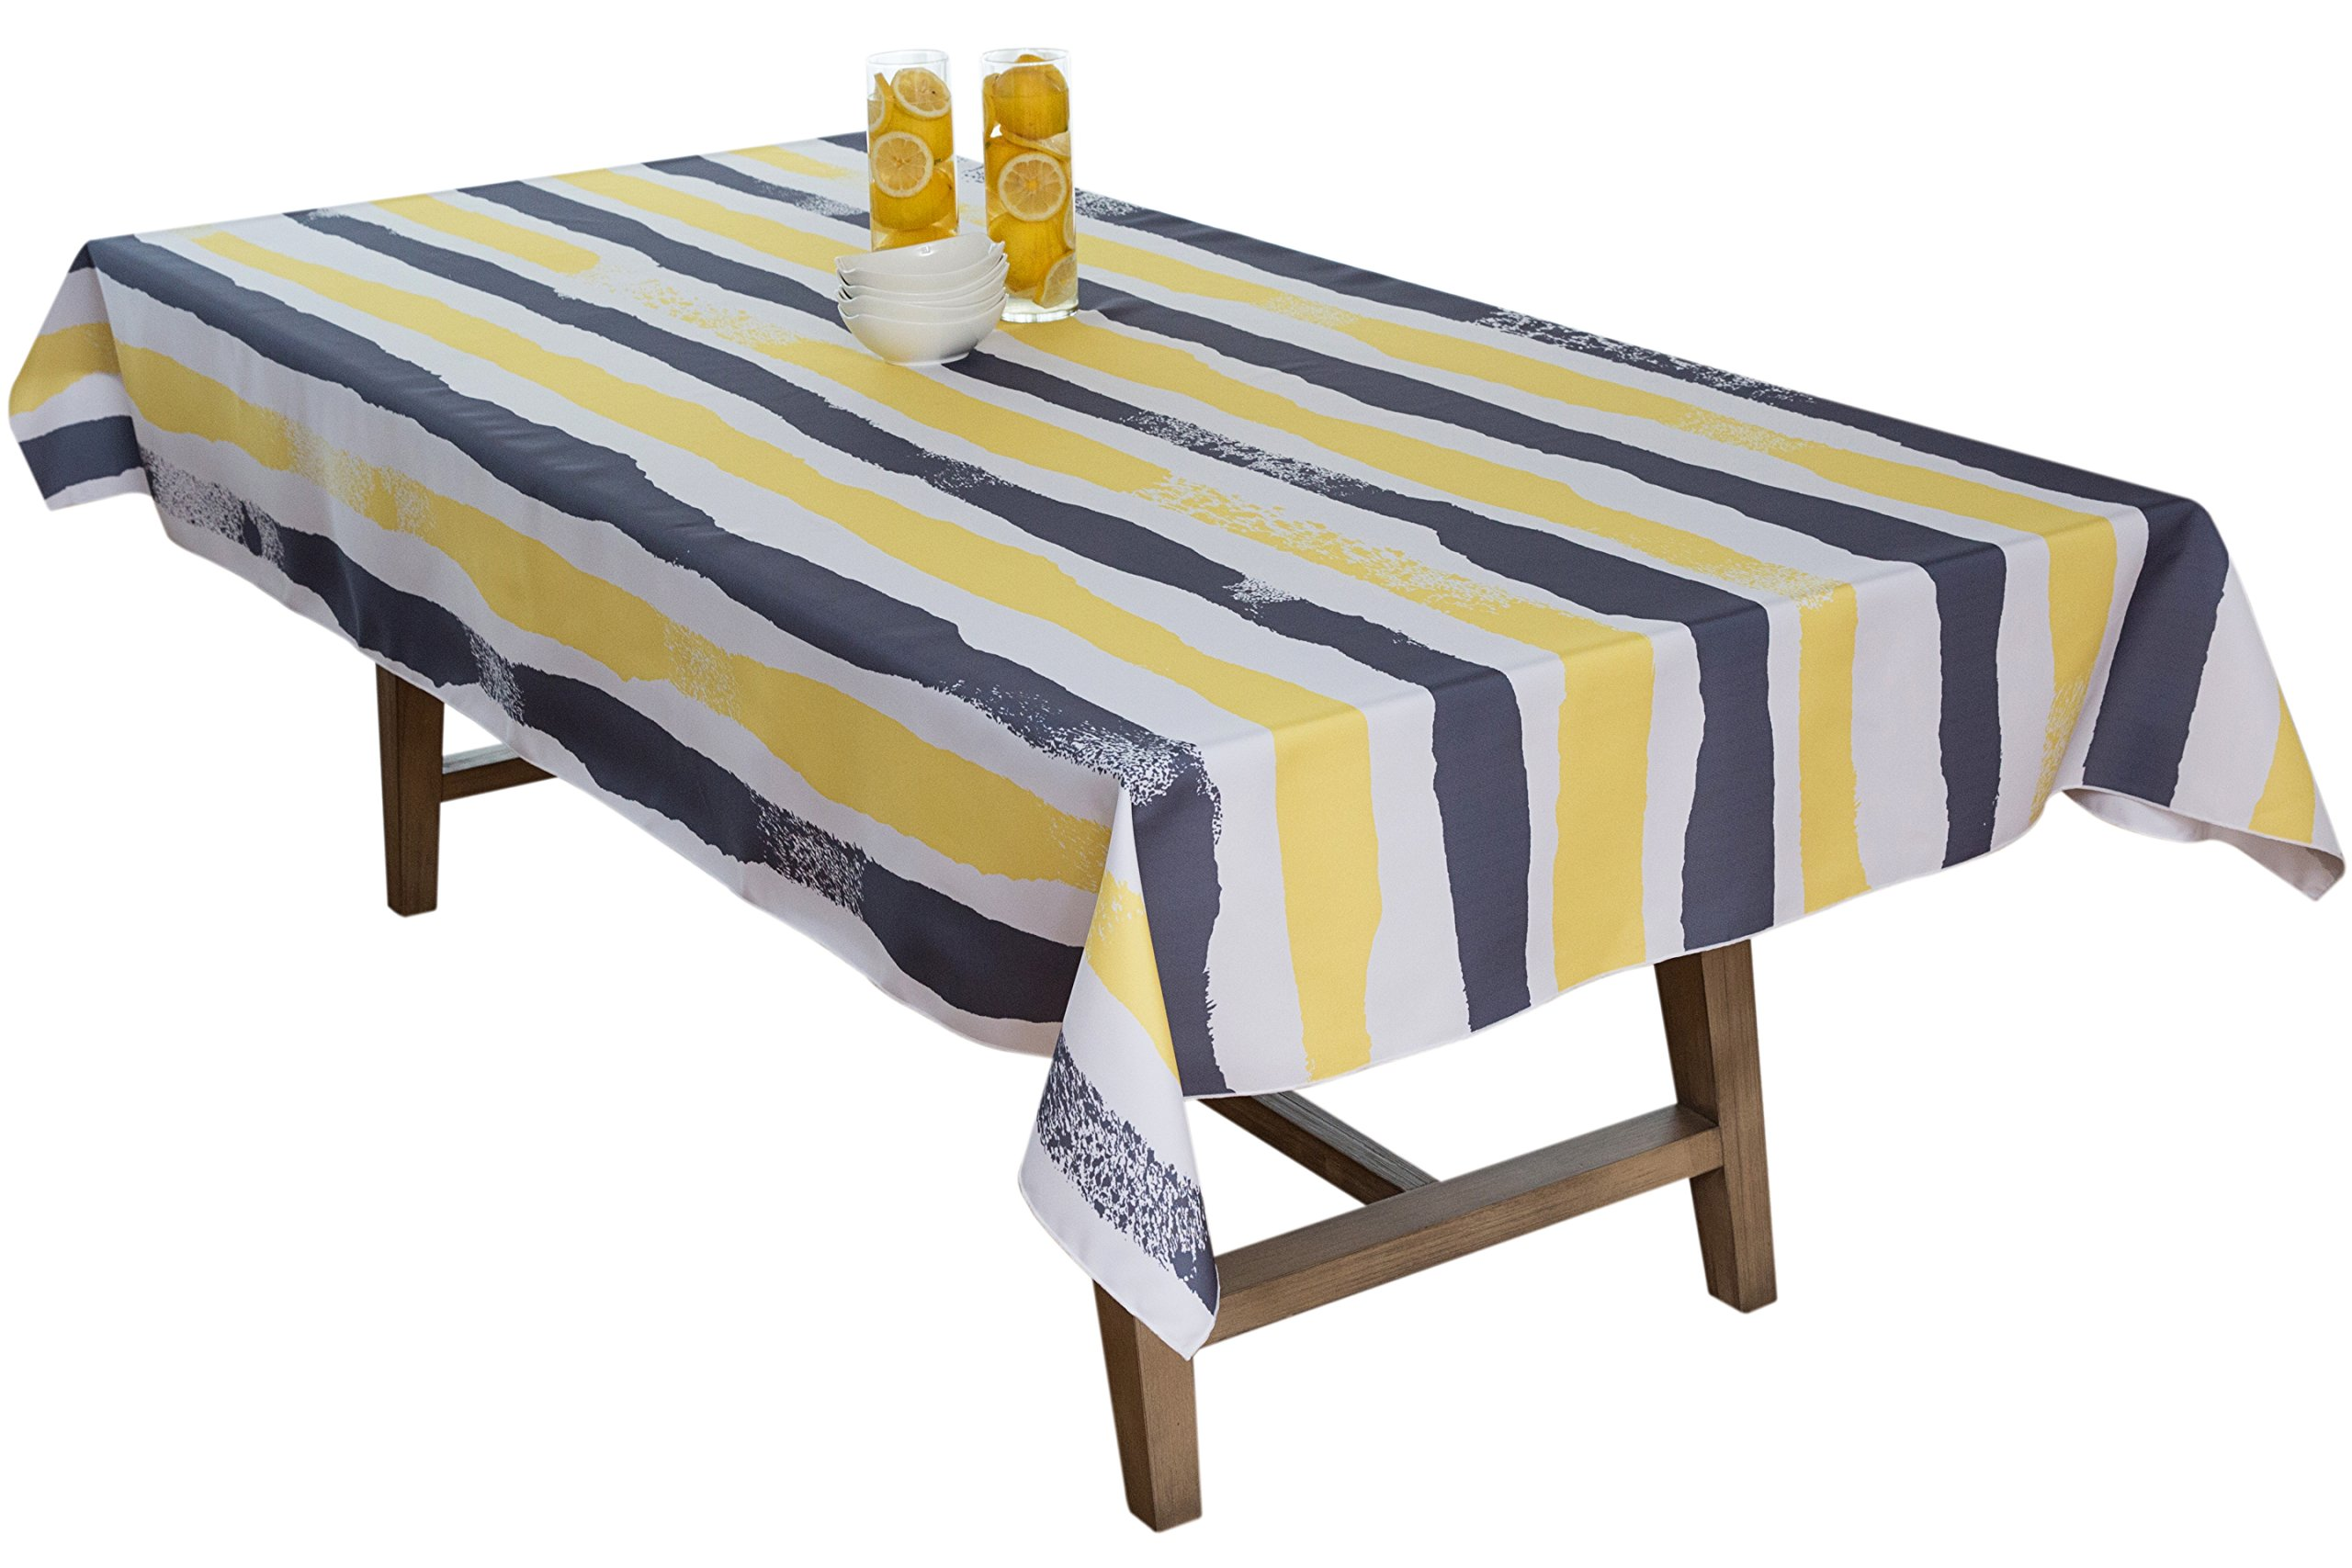 BottleCloth Multi Mod Premium Tablecloth - Superior Quality, Easy Clean, Spill Resistant, and Washable. Made from 100% Recycled Materials. Assorted colors and sizes. (60'' x 60'' Square-Steel Grey)